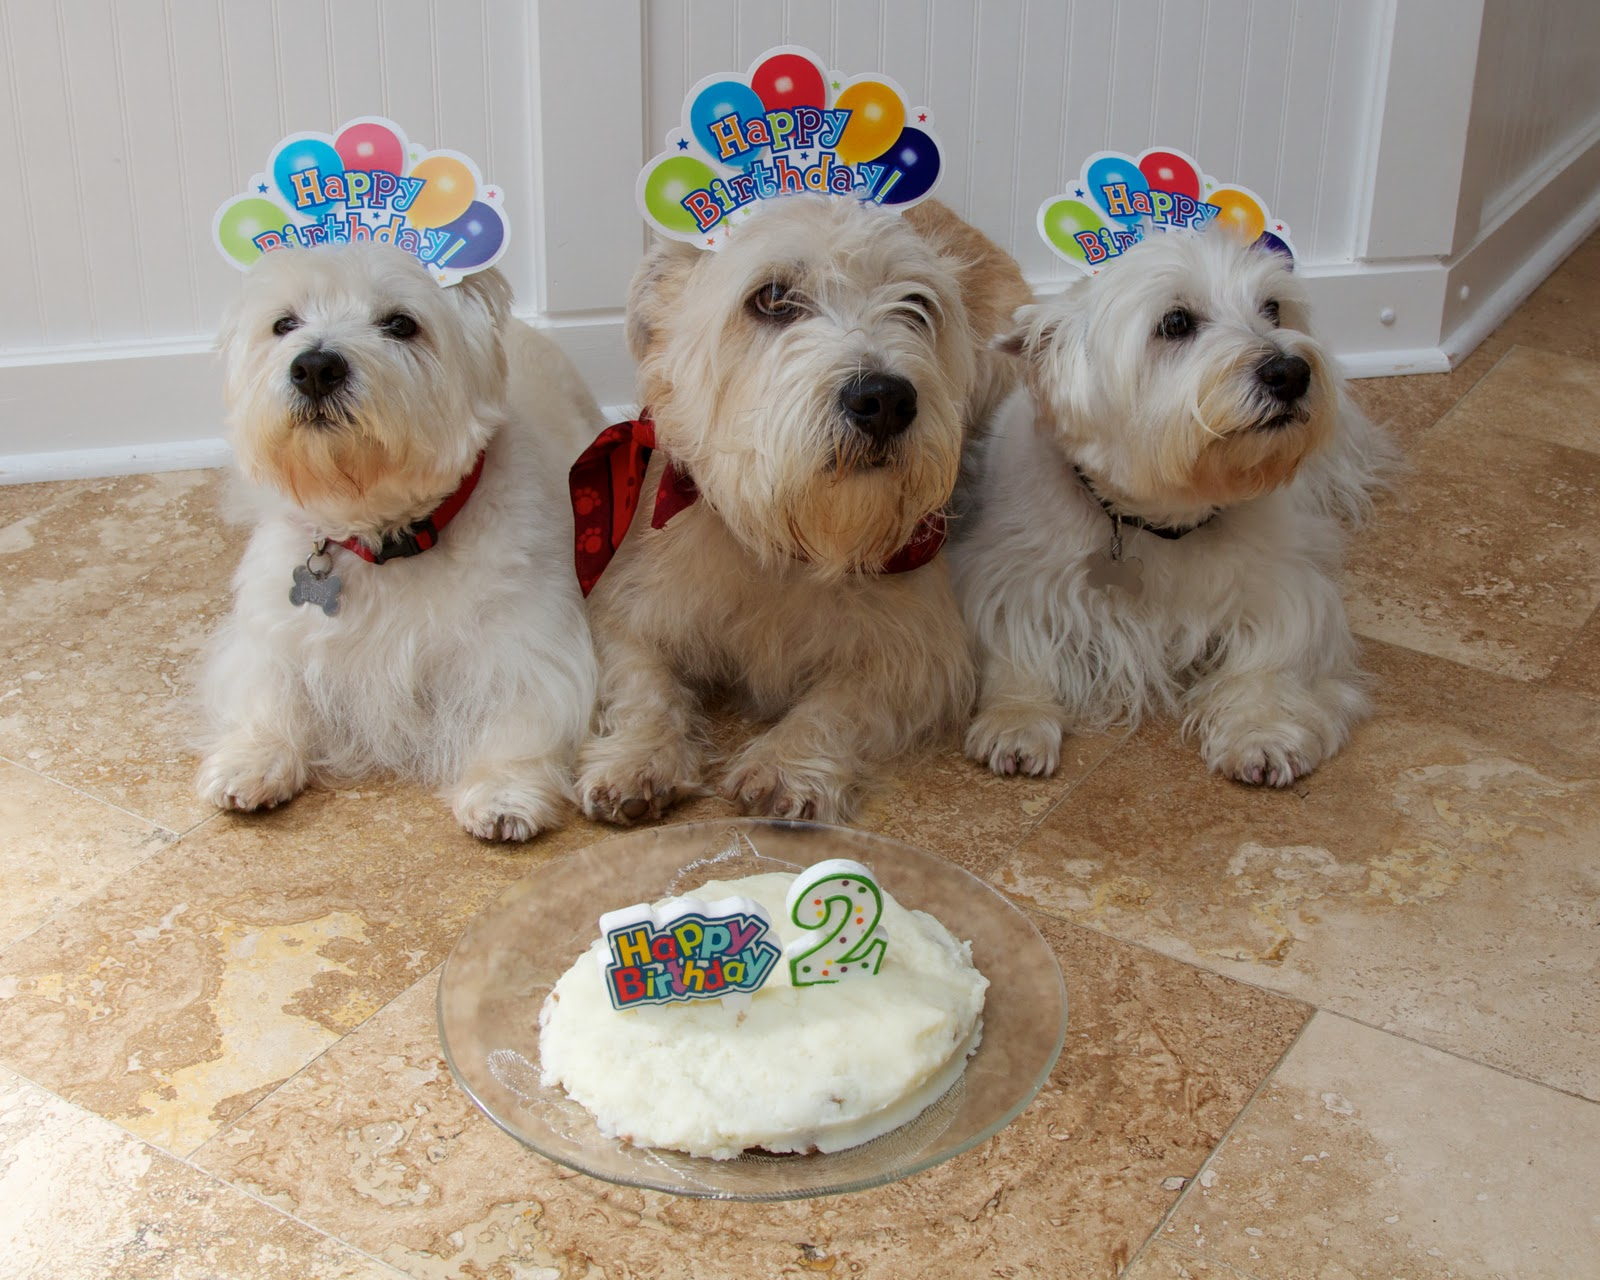 Birthday Glen of Imaal Terrier dogs wallpaper